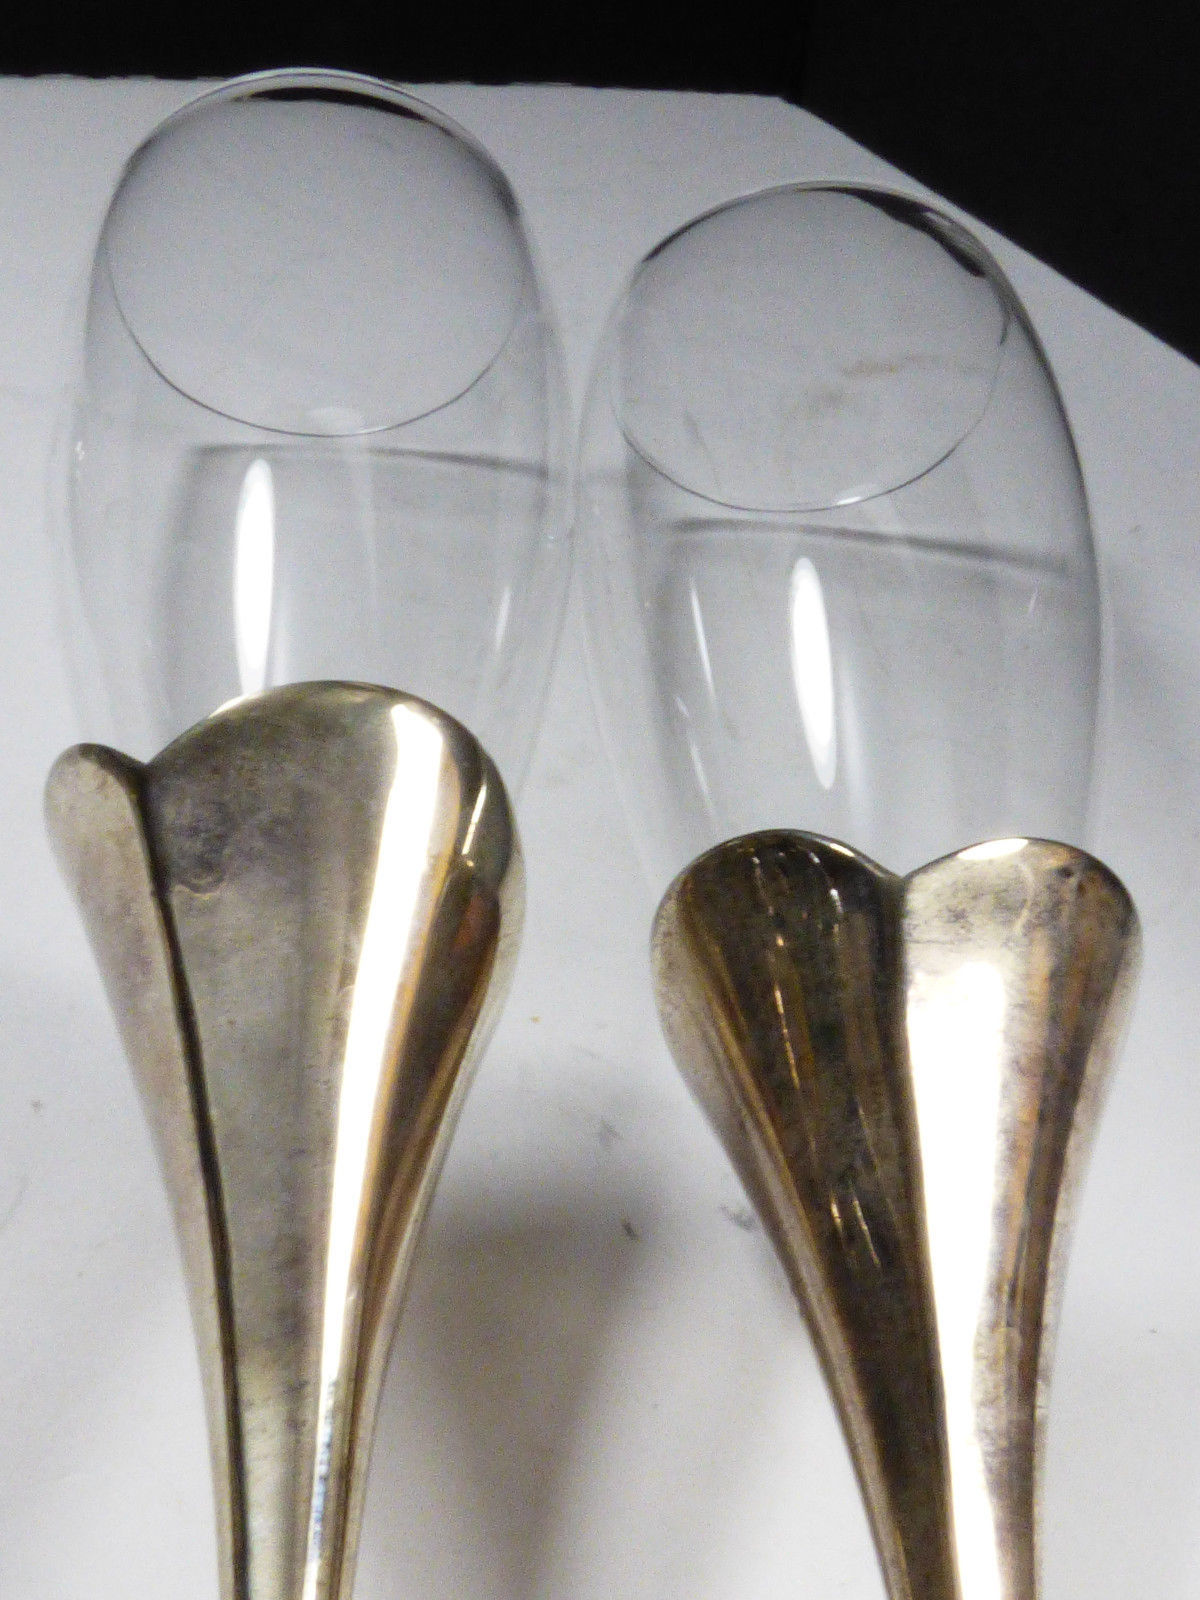 2 LENOX Crystal Champagne Flute Wedding Anniversary Silverplate Stems Heart image 5